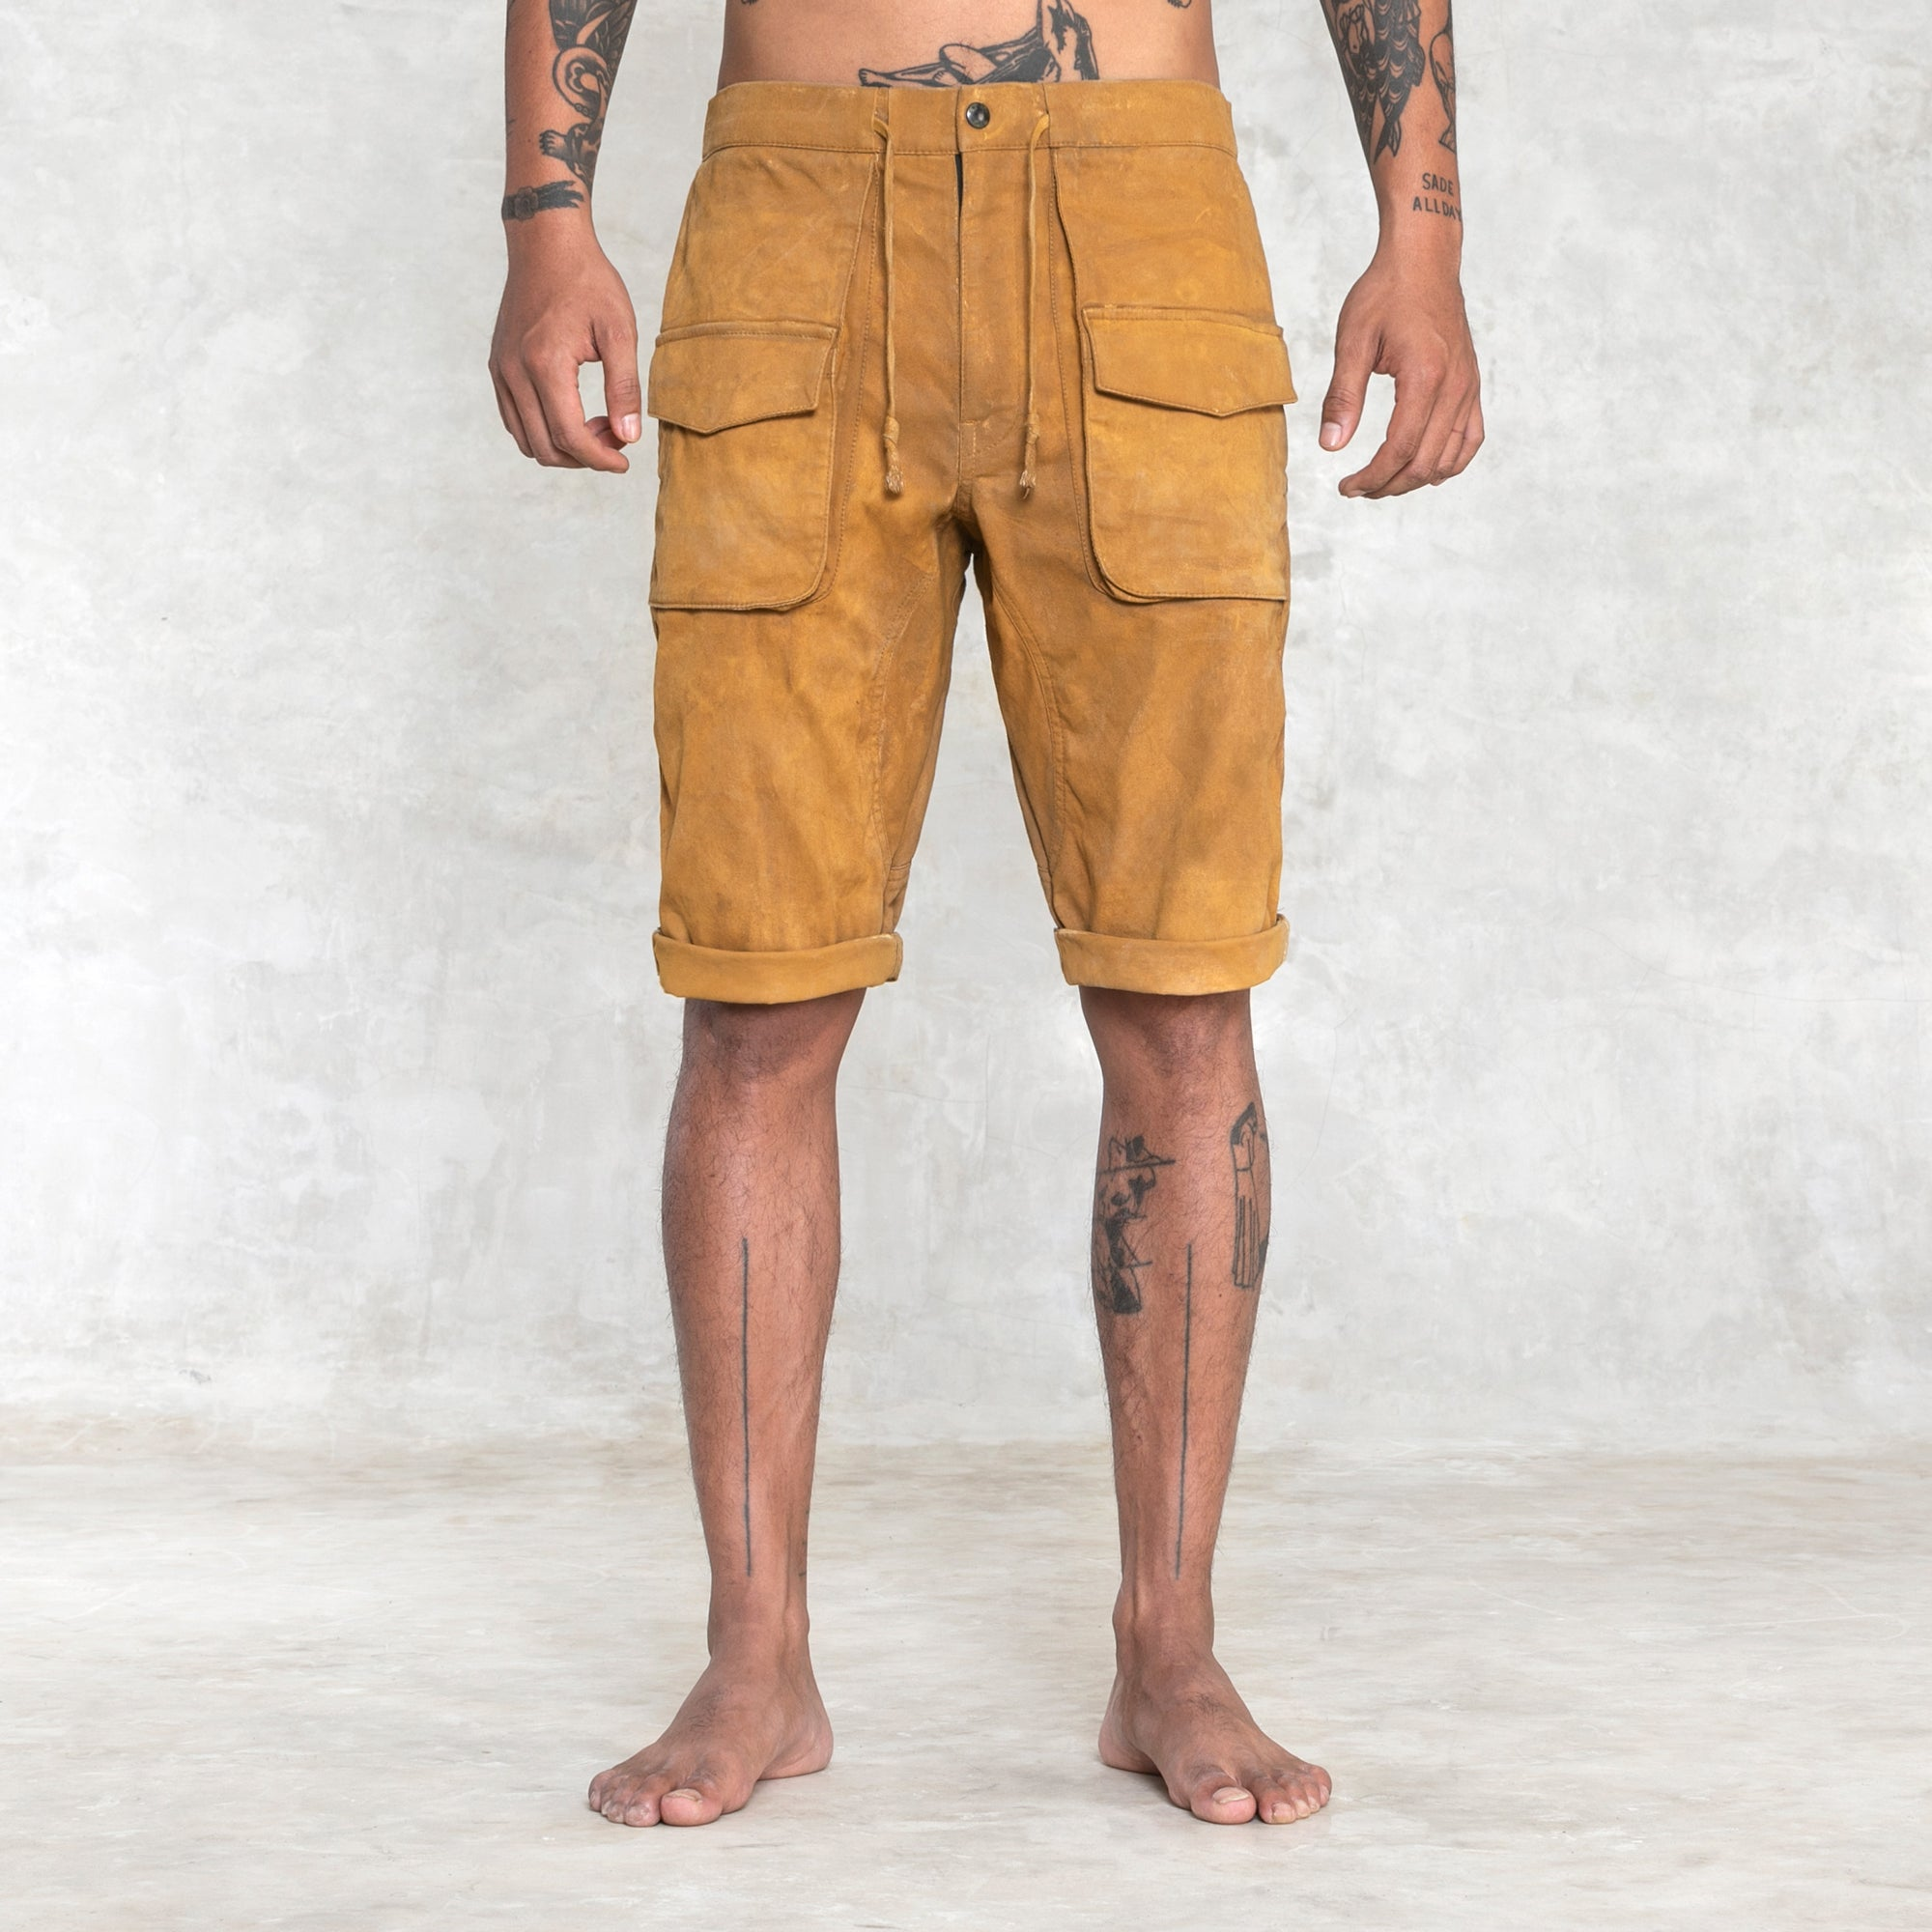 men's knee length yellow shorts